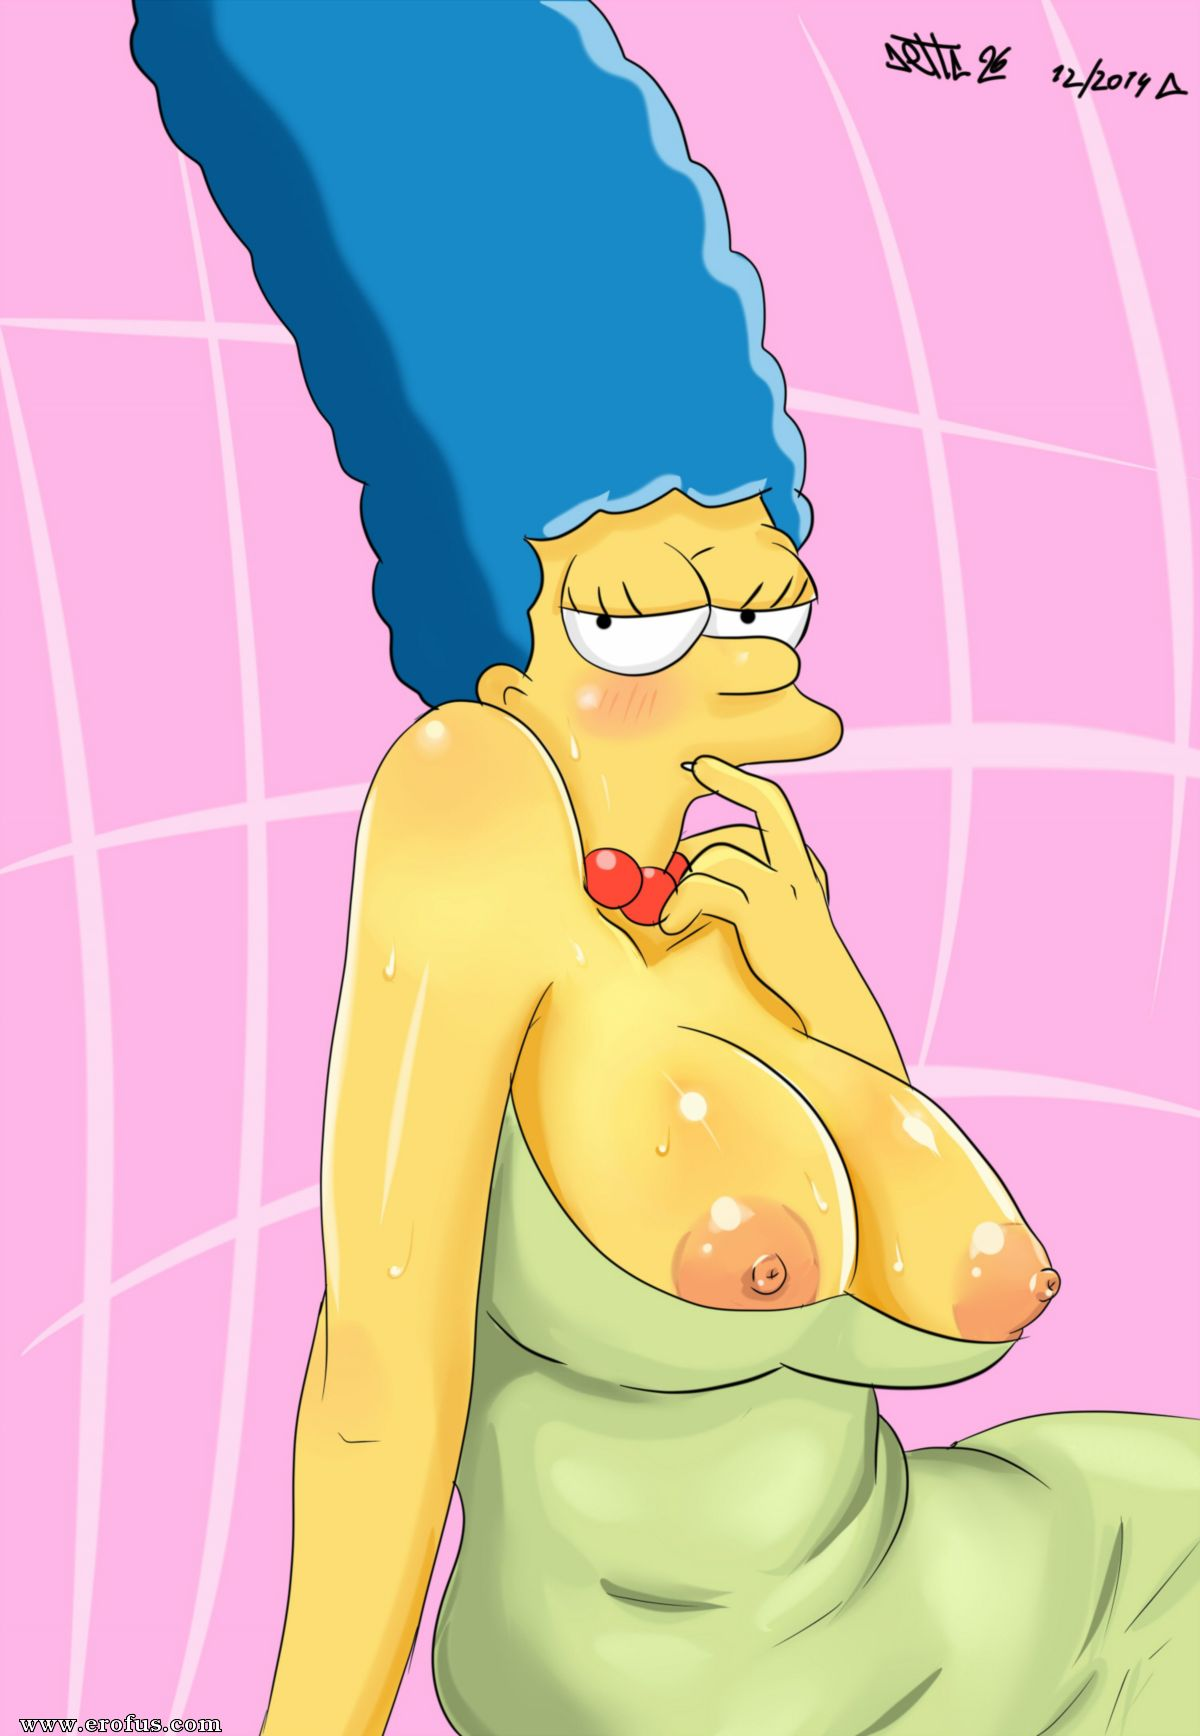 Cartoon Milf Porn Pics page 3 | various-authors/delta26/artwork-featuring-hot-busty